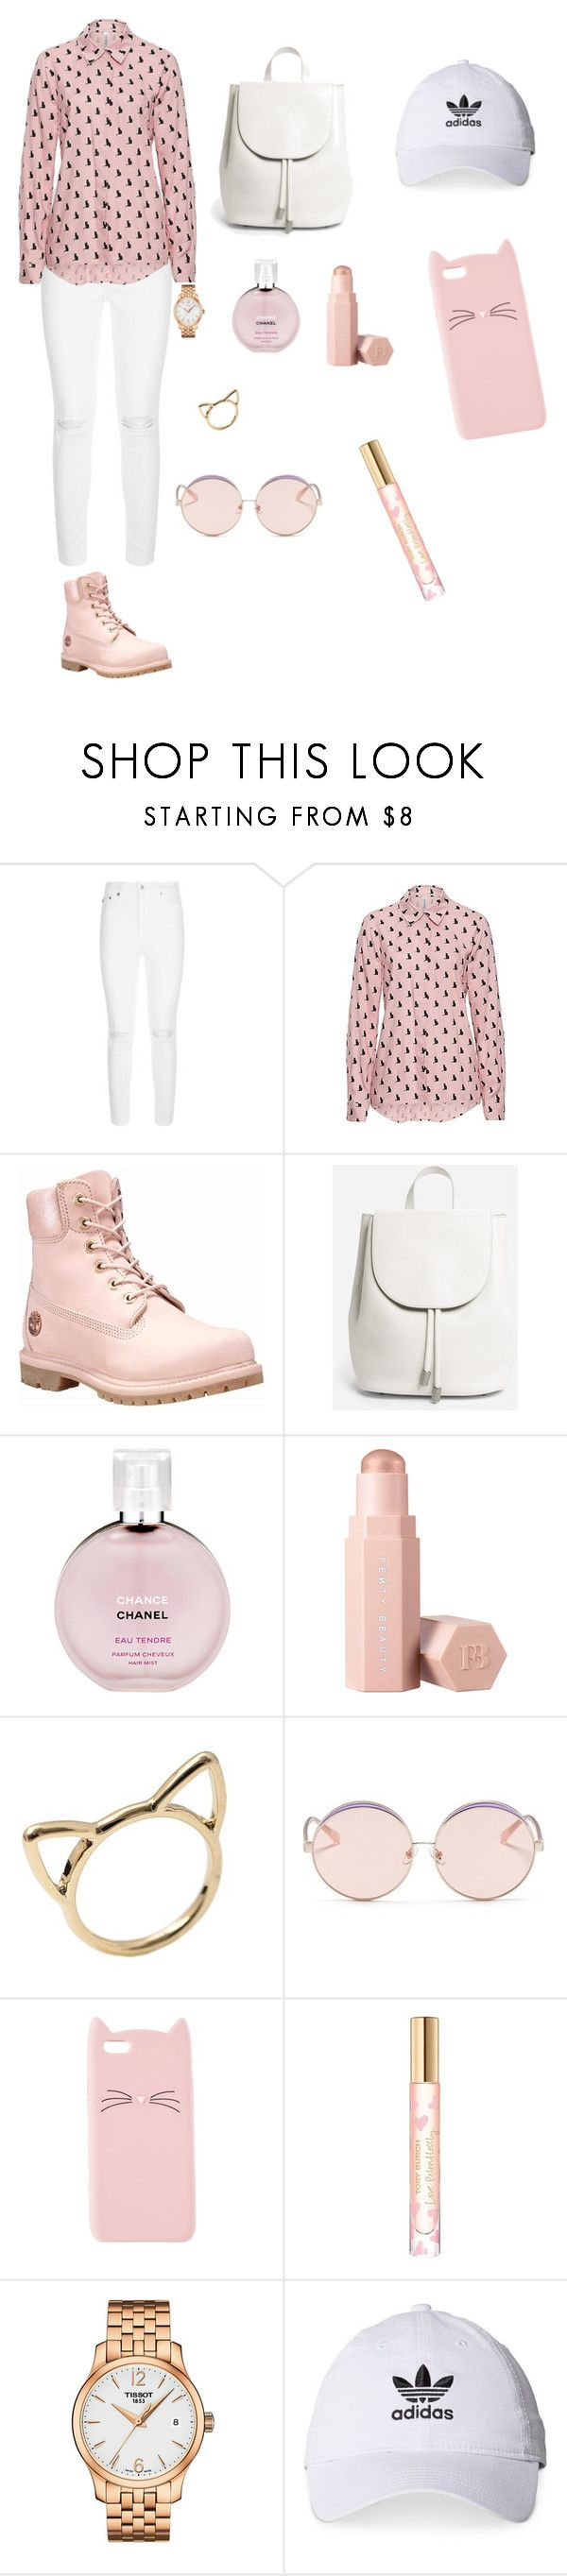 """""""tutto in rosa"""" by delialamela ❤ liked on Polyvore featuring AG Adriano Goldschmied, Timberland, Everlane, Chanel, Puma, N°21, Charlotte Russe, Tory Burch, Tissot and adidas"""